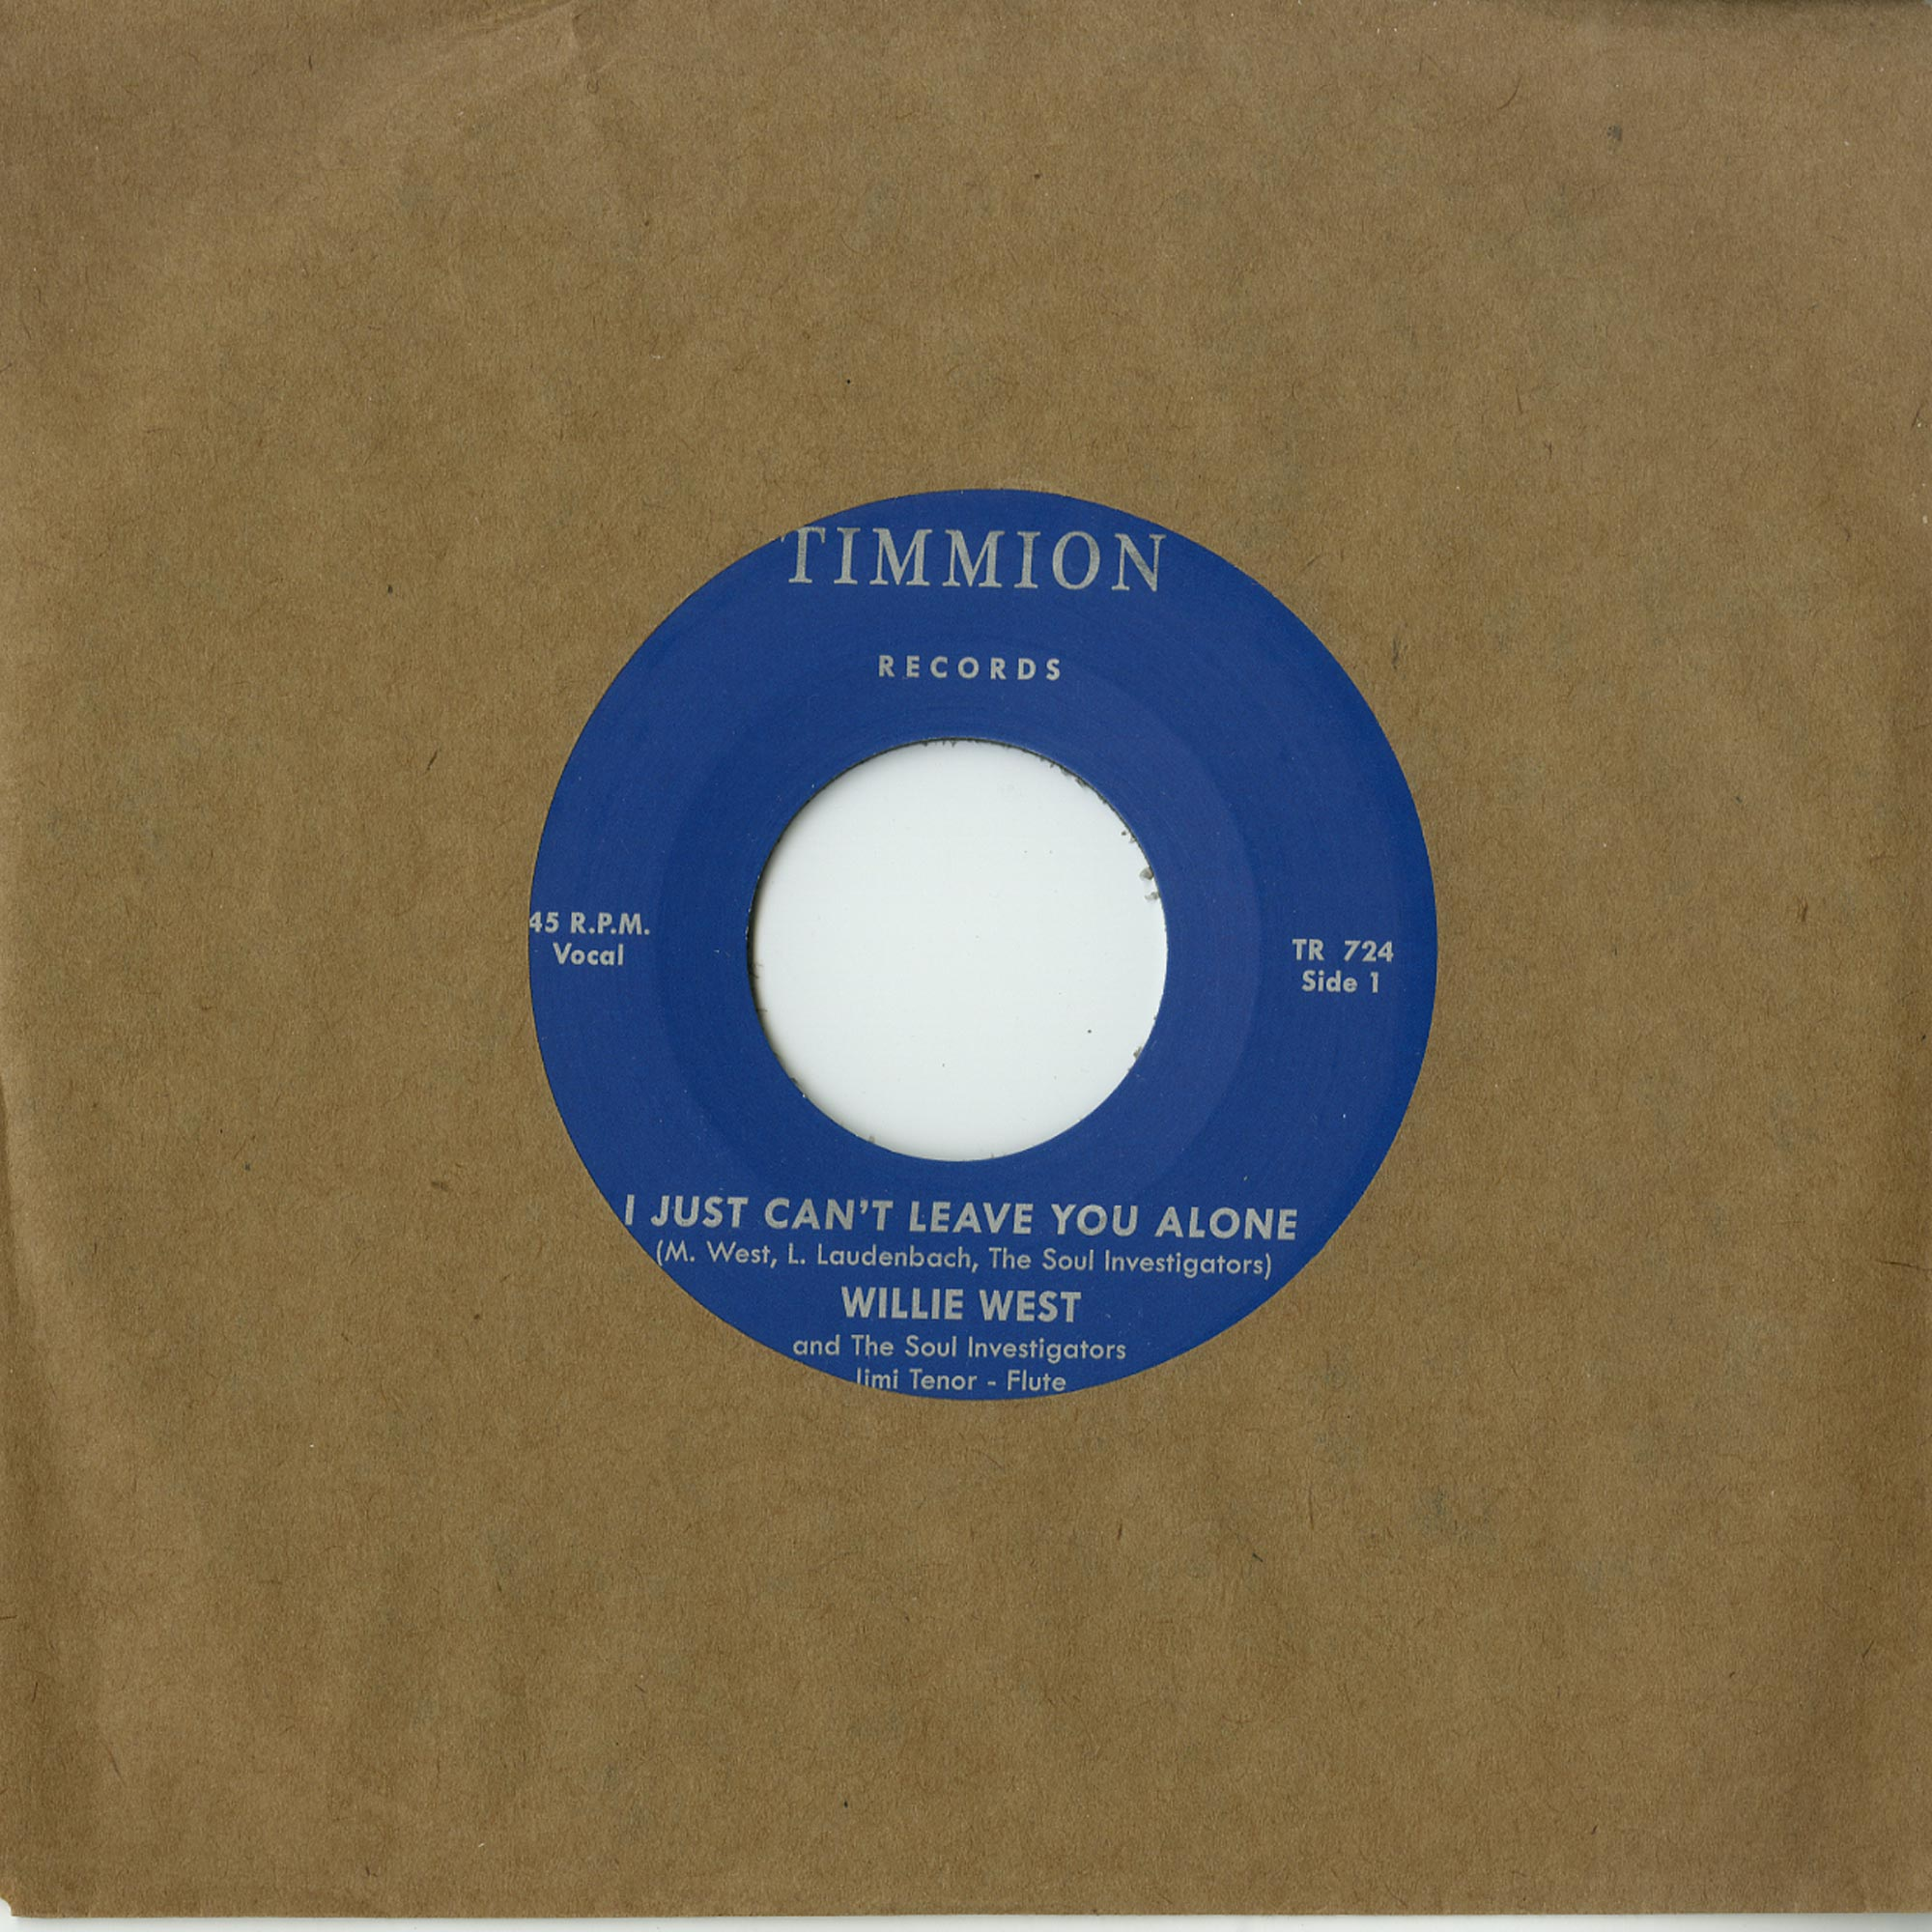 Willie West & The Soul Investigators ft. Jimi Tenor - I JUST CAN T LEAVE YOU ALONE